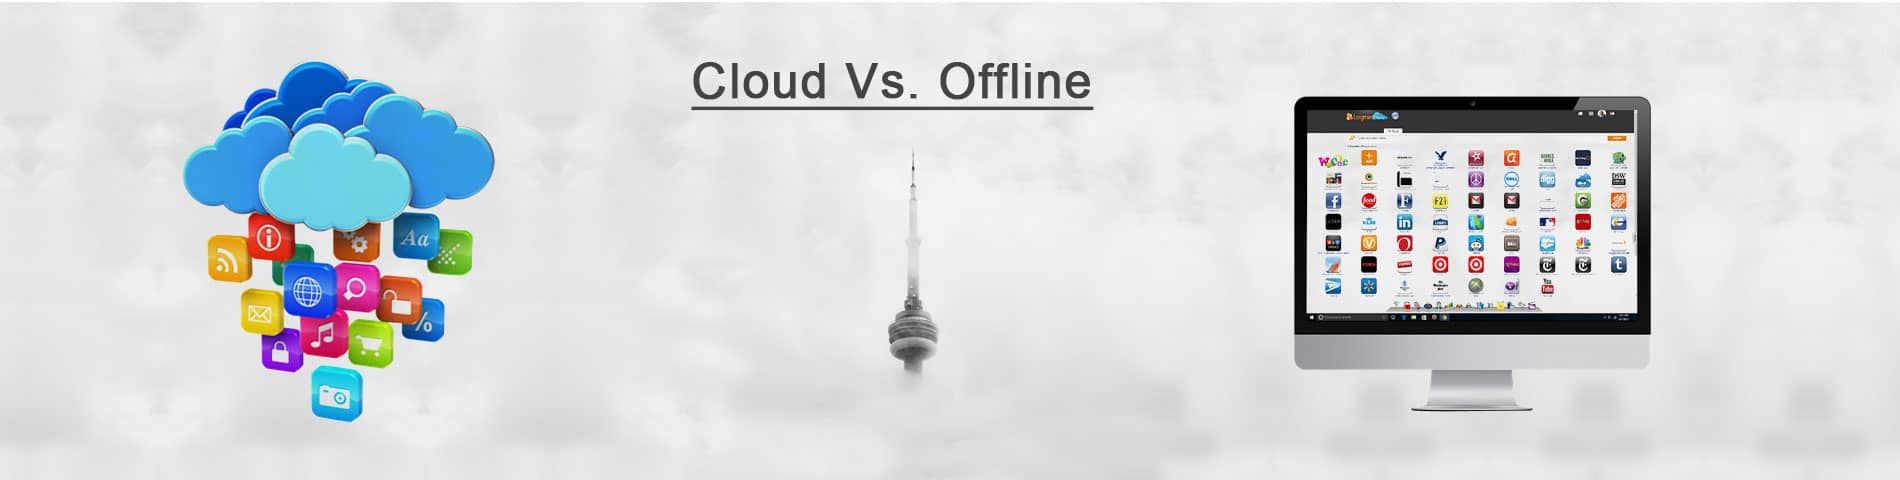 cloud vs offline